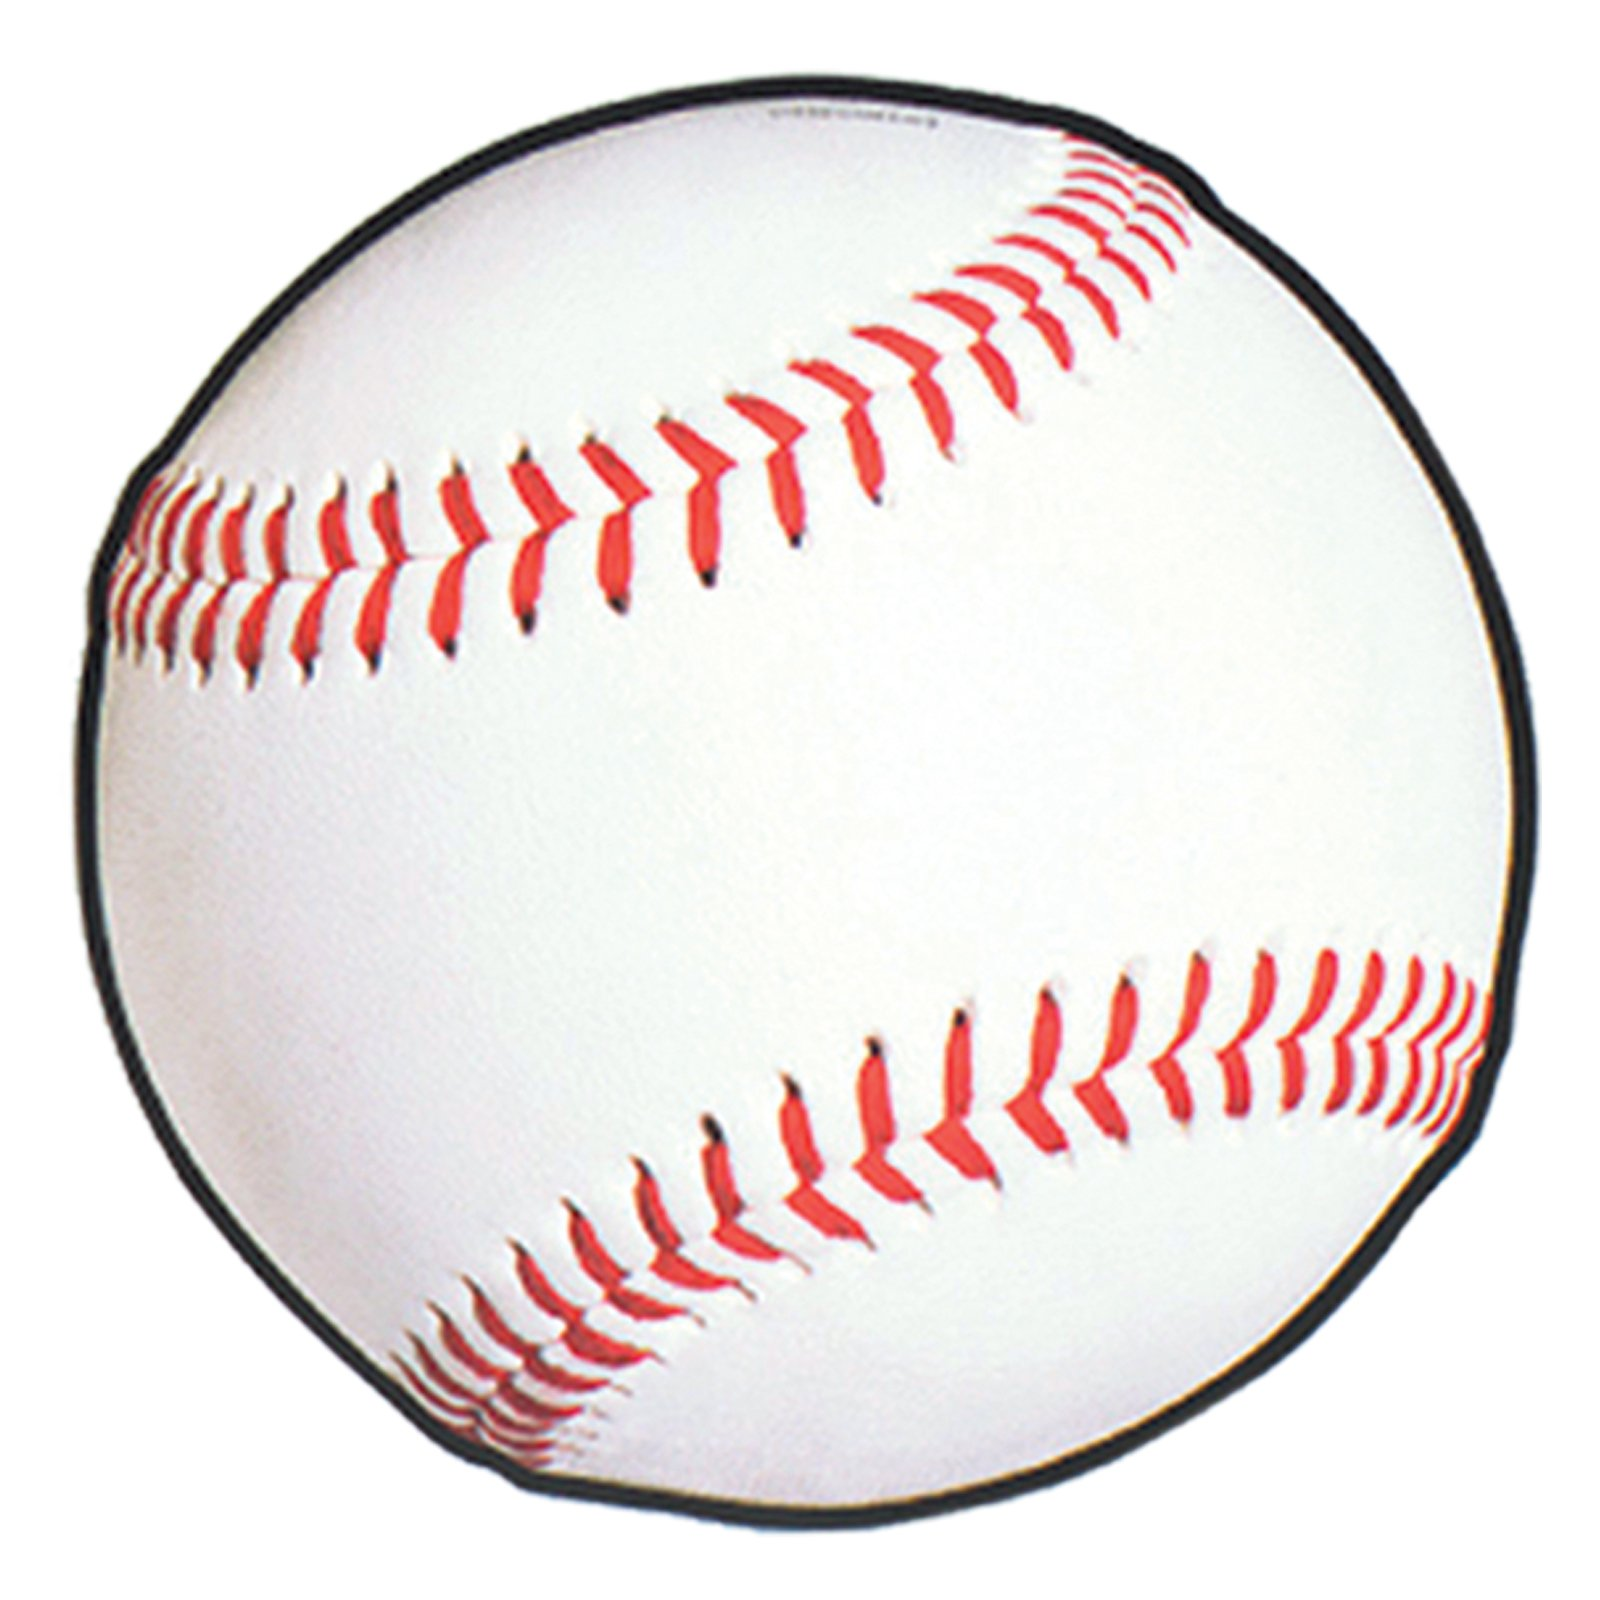 Free Baseball Clip, Download Free Clip Art, Free Clip Art on.